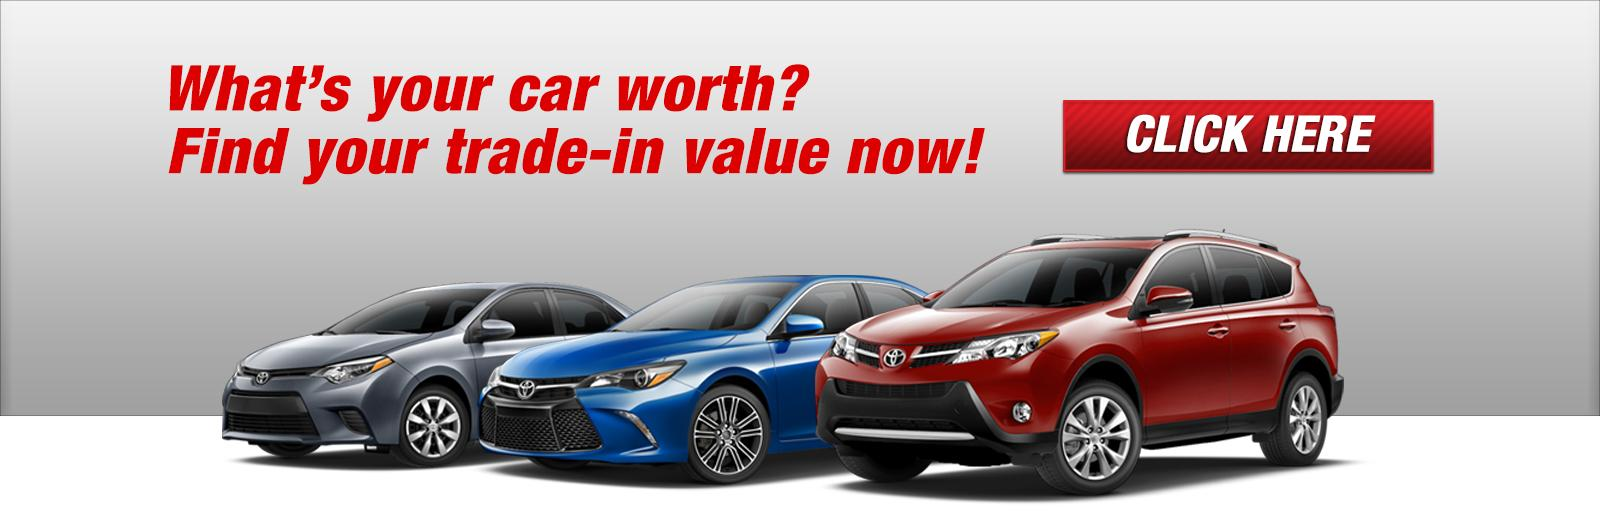 Boch Toyota Norwood | MA Toyota Dealer Near Boston